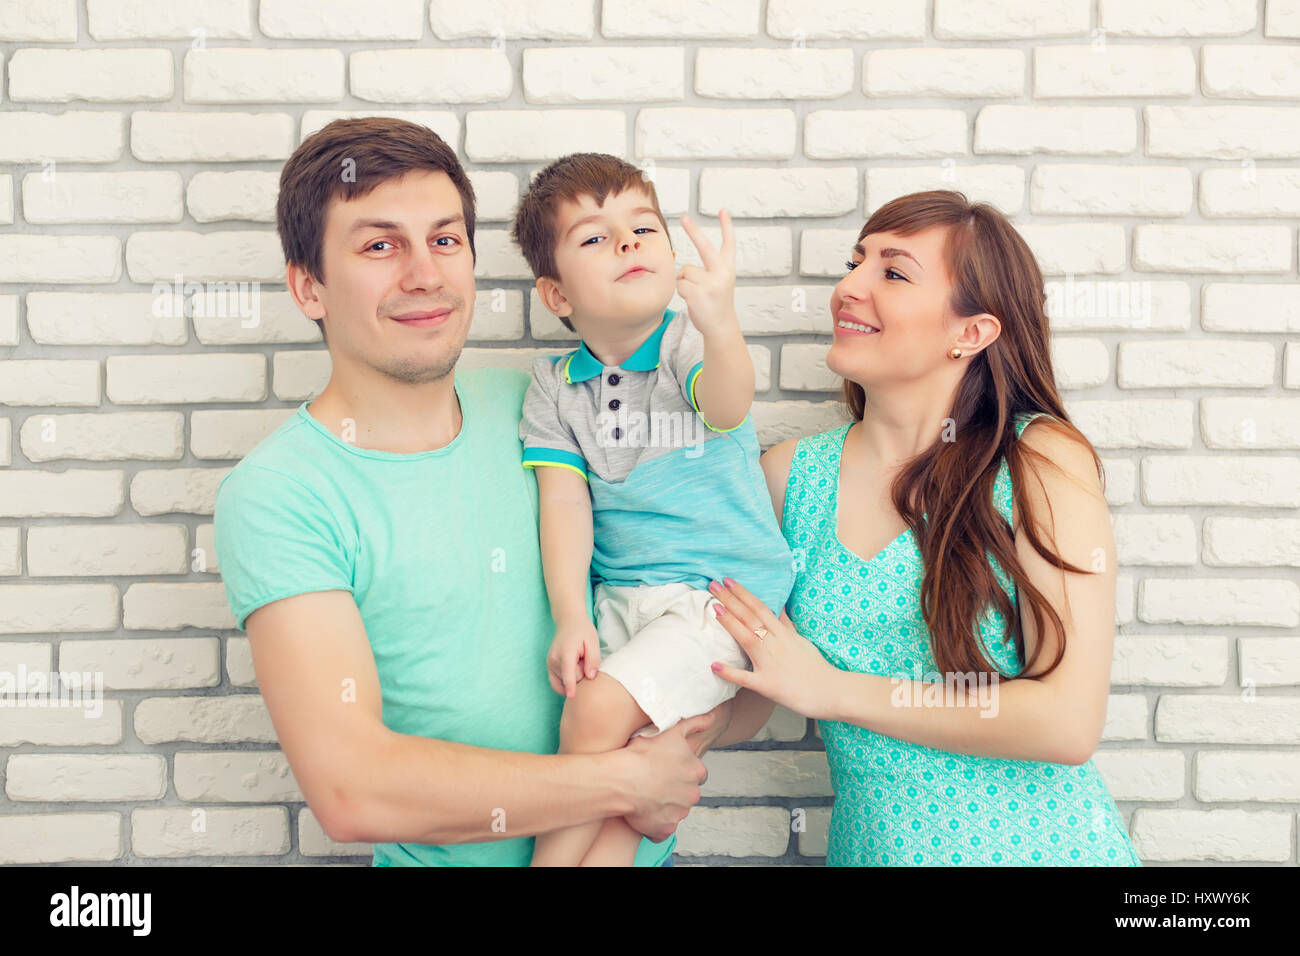 Heureux et smiling young family Portrait on brick wall Background. Son père et sa mère avec un petit bébé Photo Stock